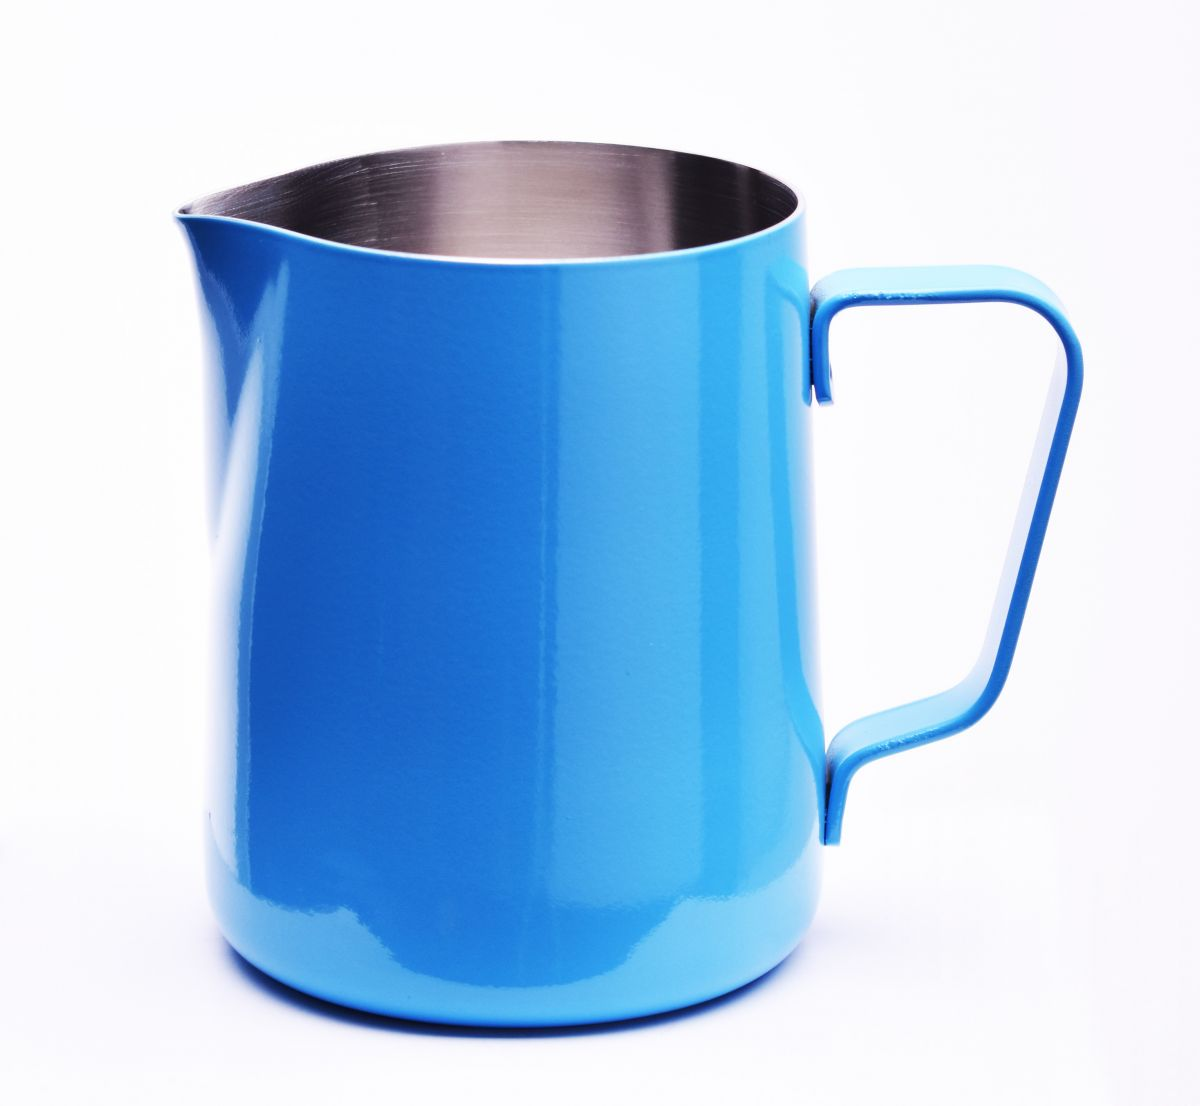 Joe Frex Milk Pitcher powder coated Azul Blue 350 ml